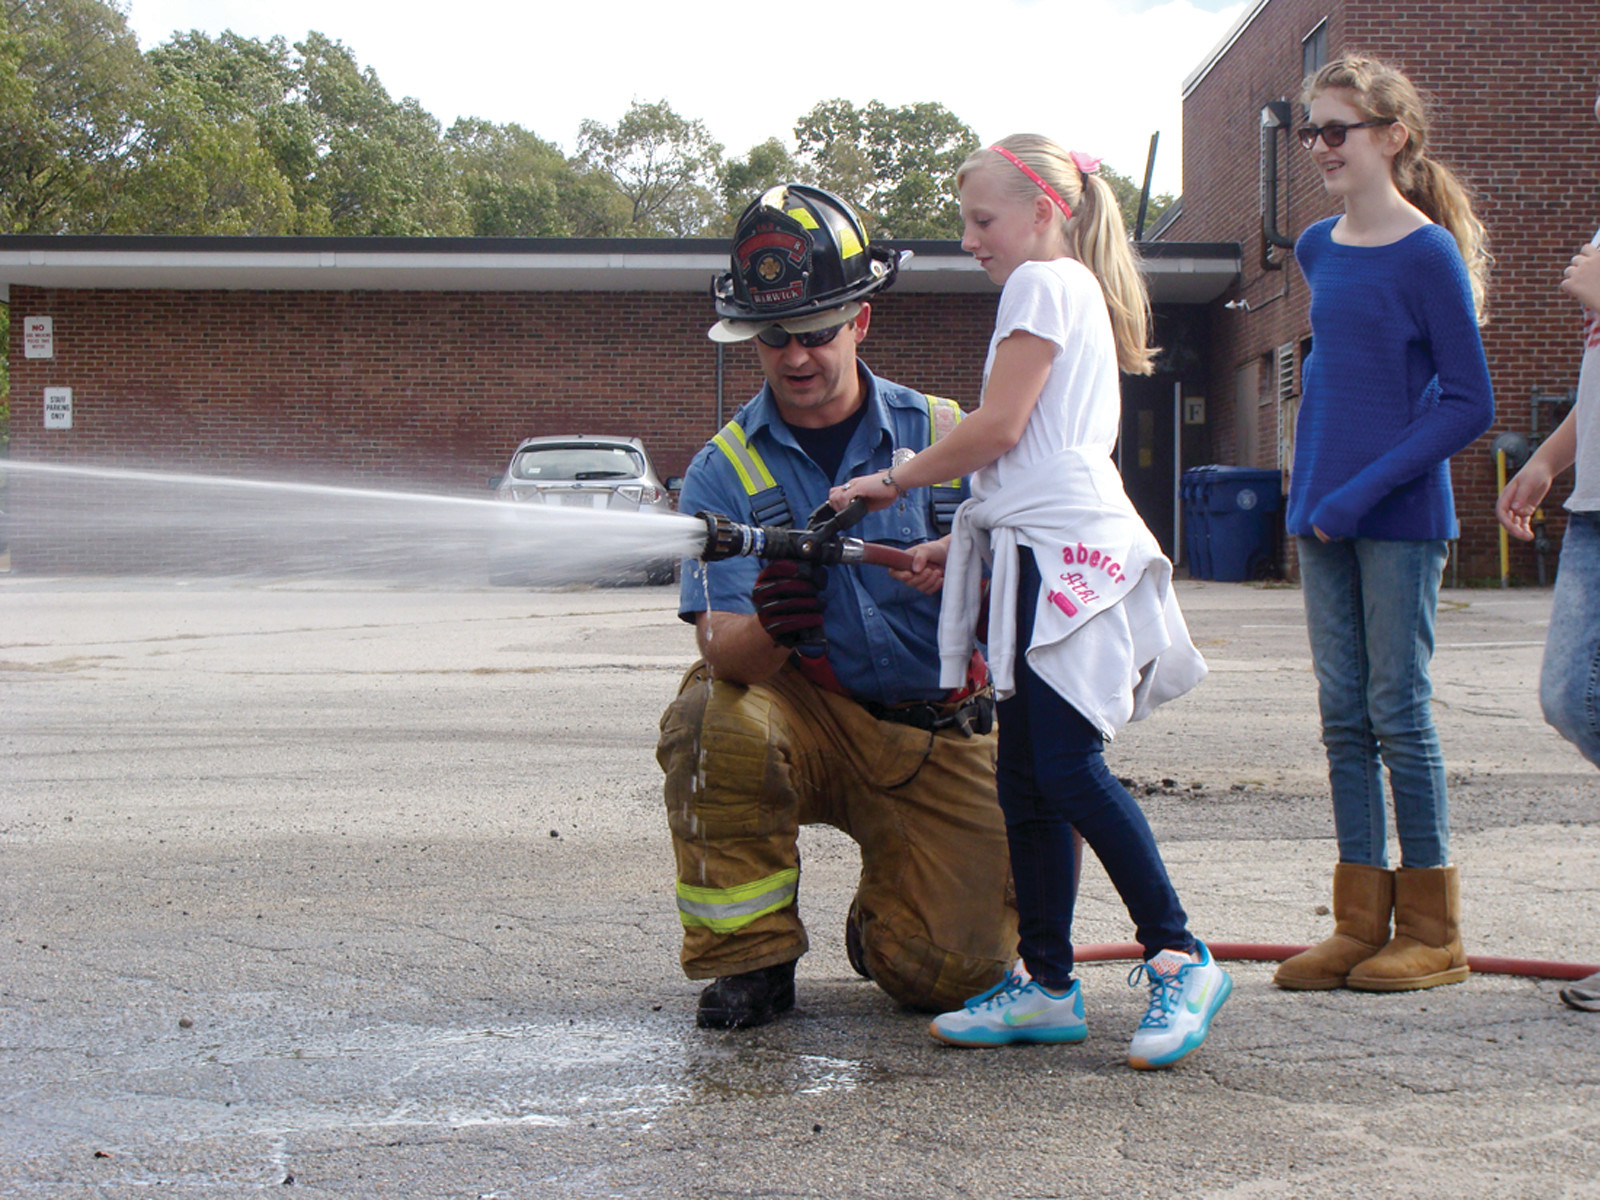 HOLD THE HOSE: Members of the Warwick Fire Department visited Holliman Elementary with two trucks on Wednesday afternoon for the Touch a Truck for a Buck fundraiser. Students learned about the different parts of a fire truck and were even able to use one of the hoses off the trucks with the help of a fireman.